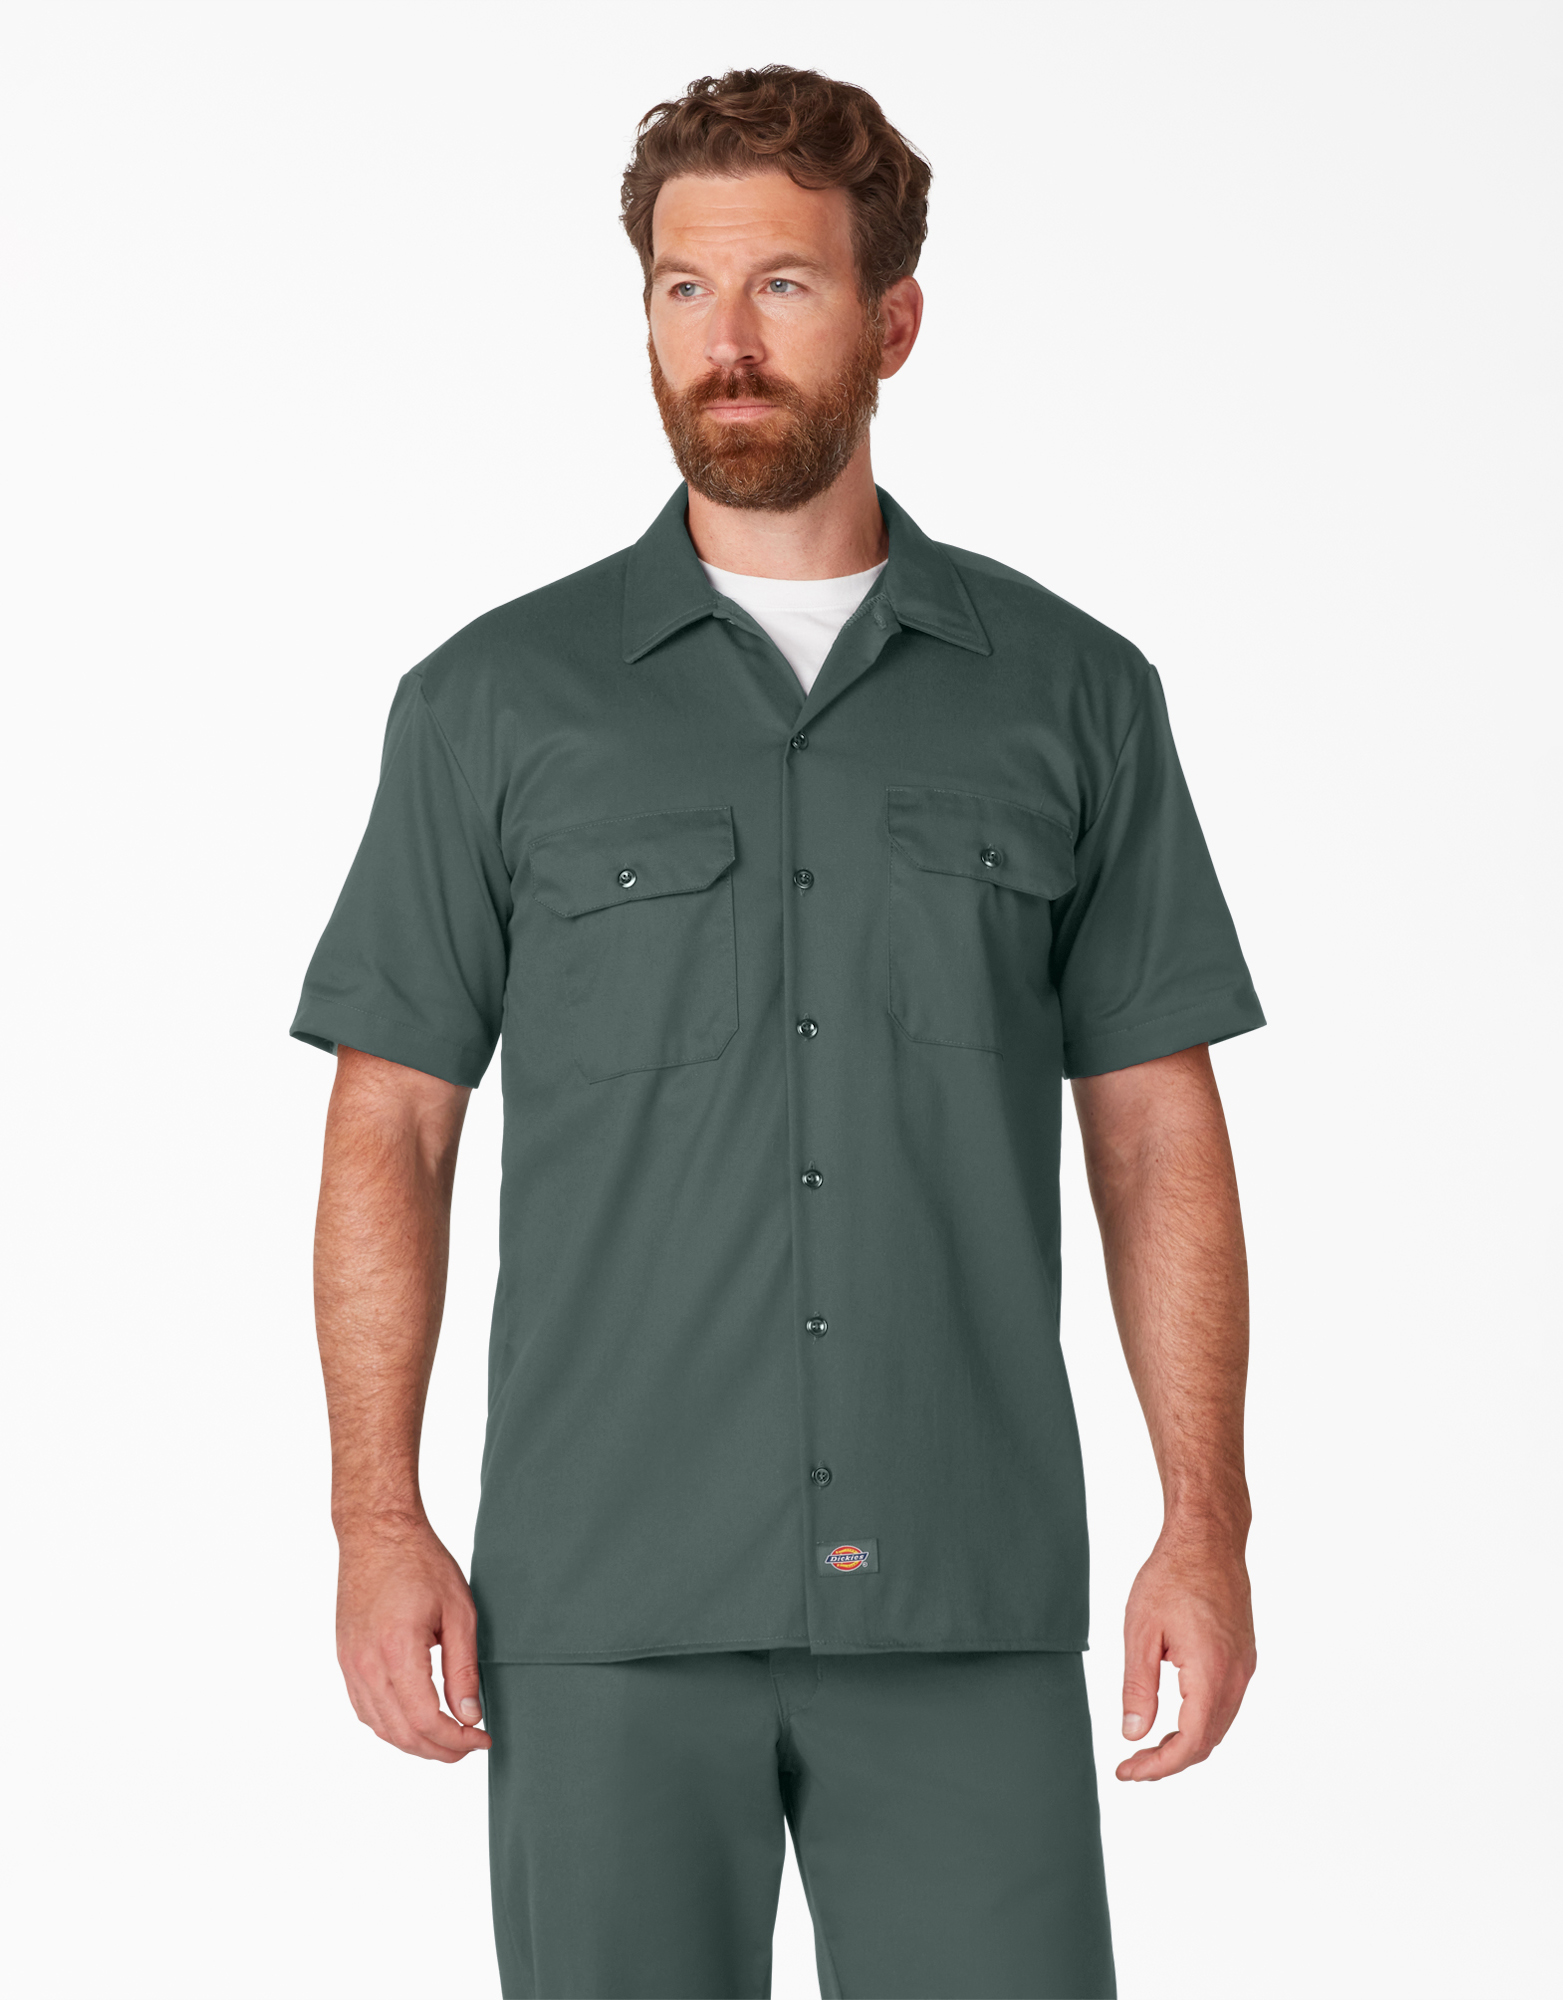 Short Sleeve Work Shirt - Hunter Green (GH)